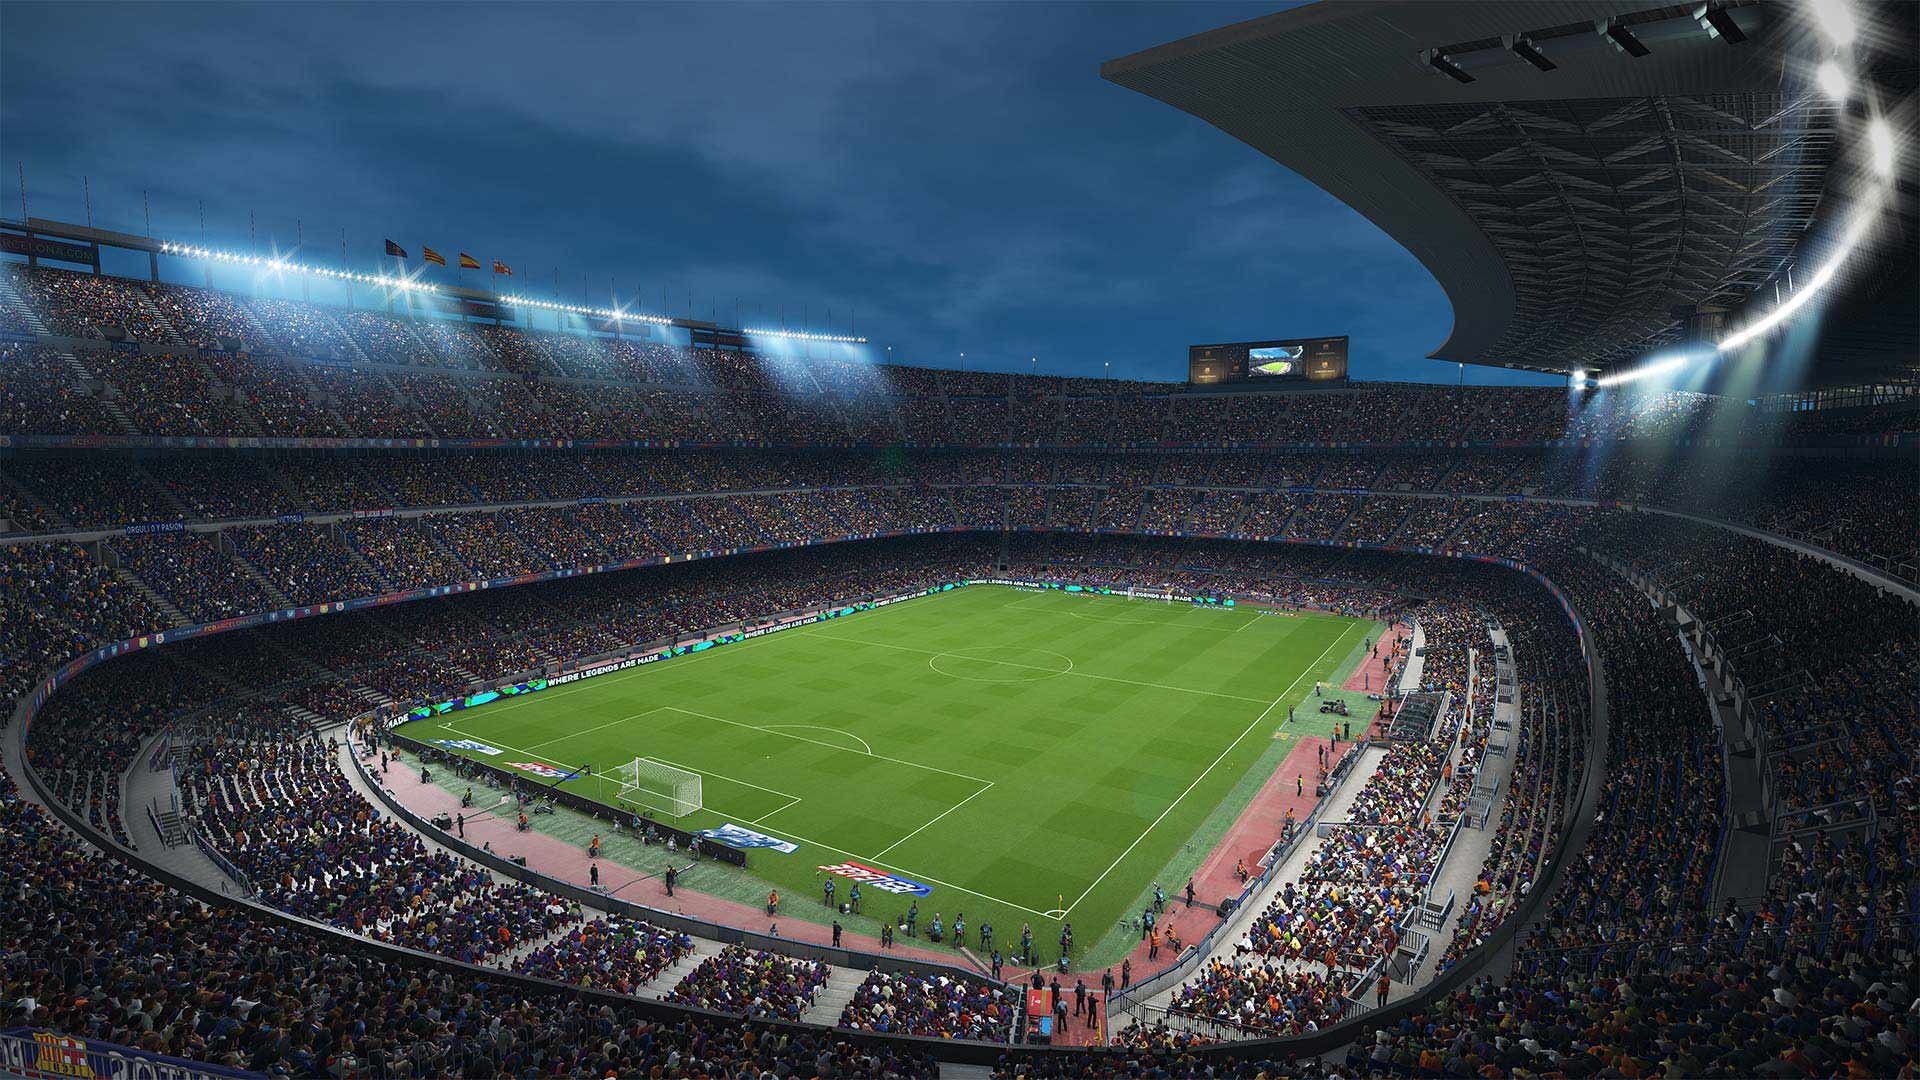 download pro evolution soccer 2018 cracked by cpy co-op sports simulation games include all dlc and latest update mirrorace multiup